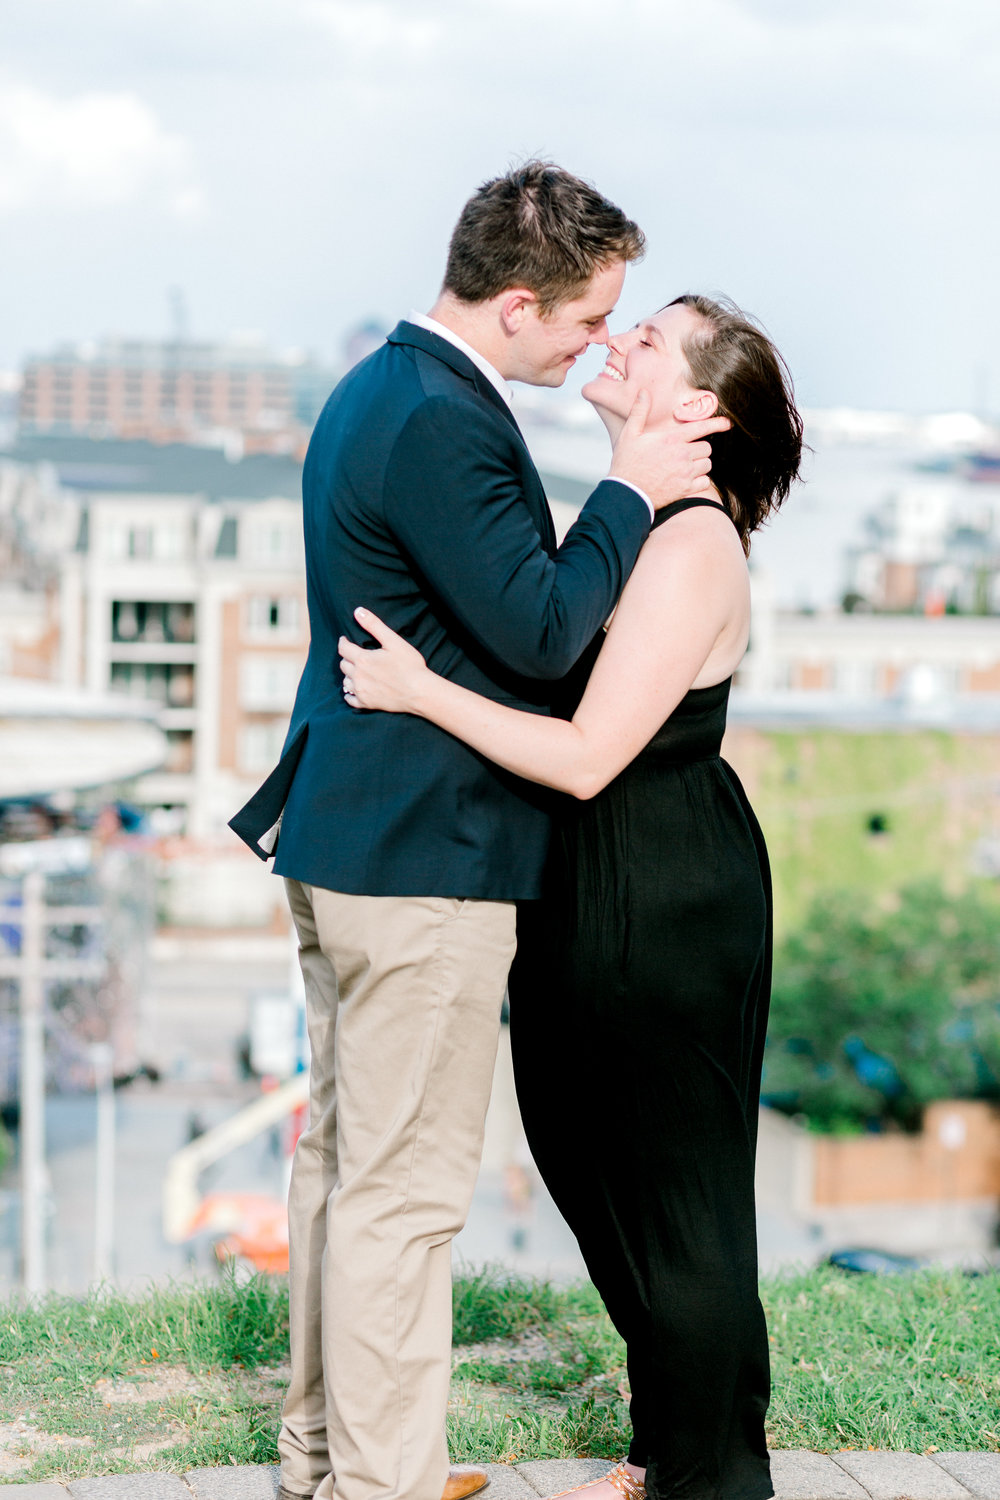 Baltimore Federal Hill Park Stormy Engagement Session Lytle Photo Co (66 of 92).jpg